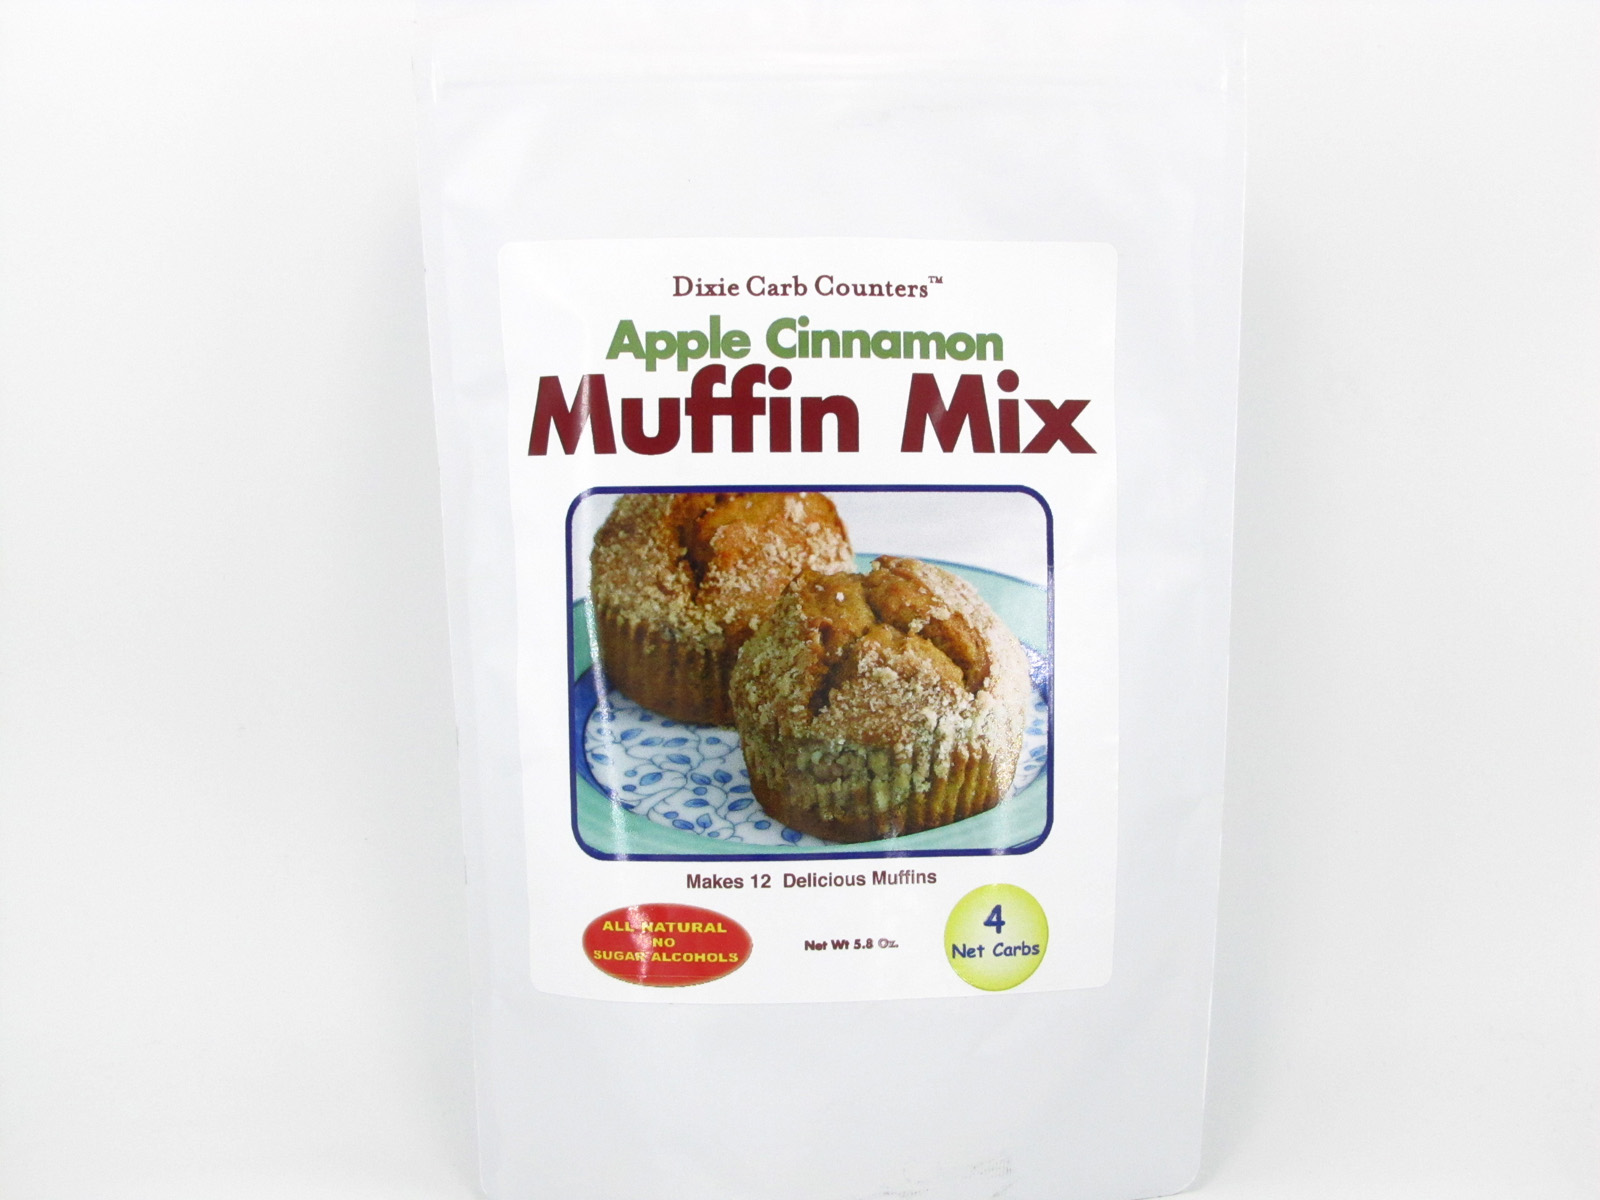 Muffin Mix - Apple Cinnamon - front view